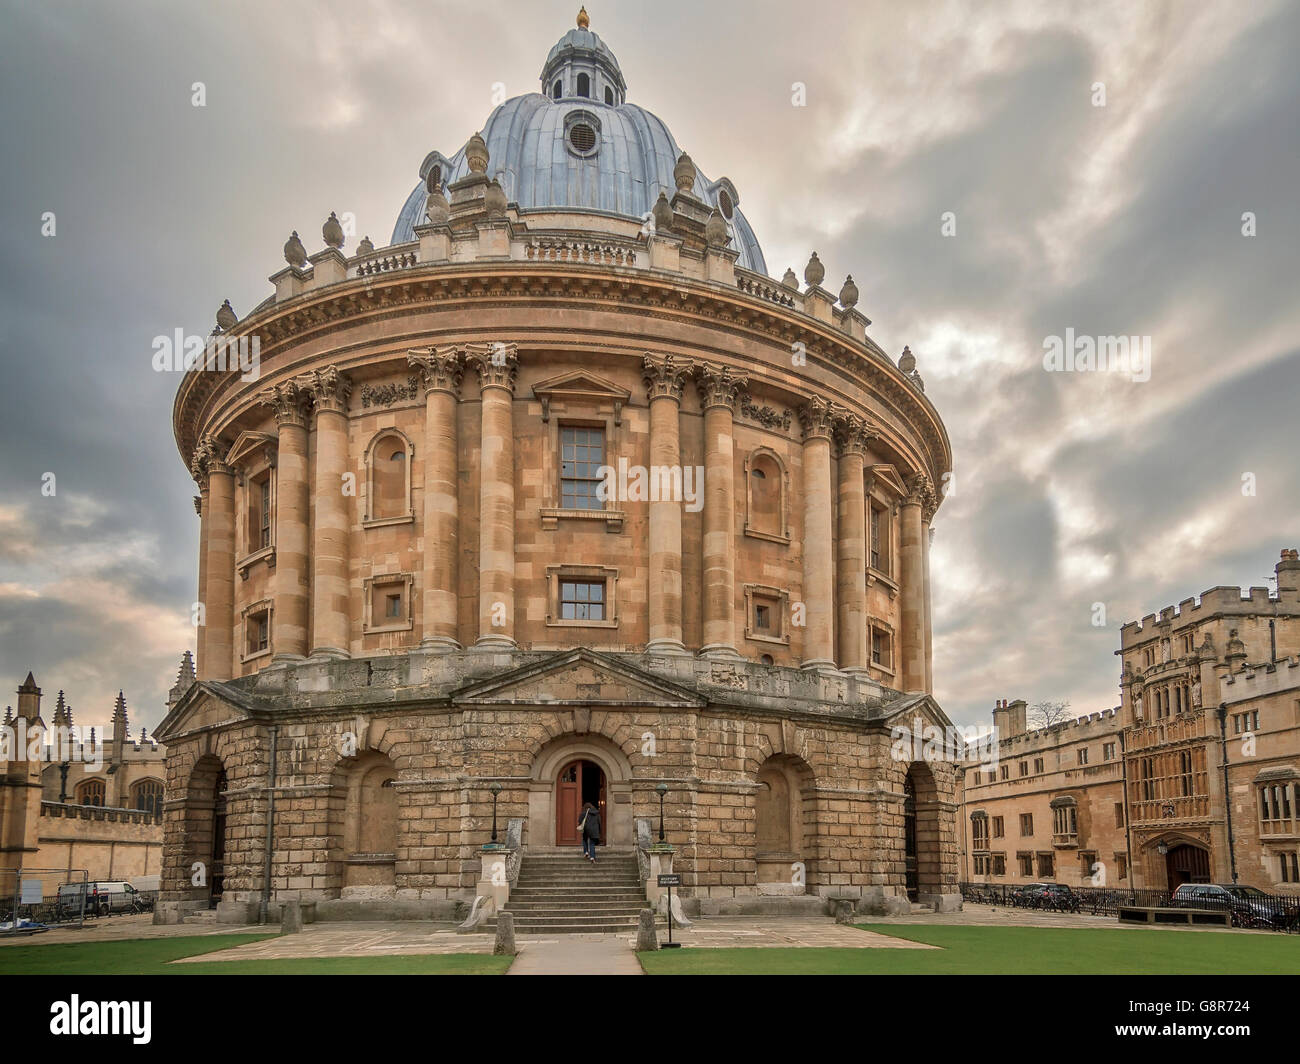 Radcliffe Camera Oxford UK - Stock Image